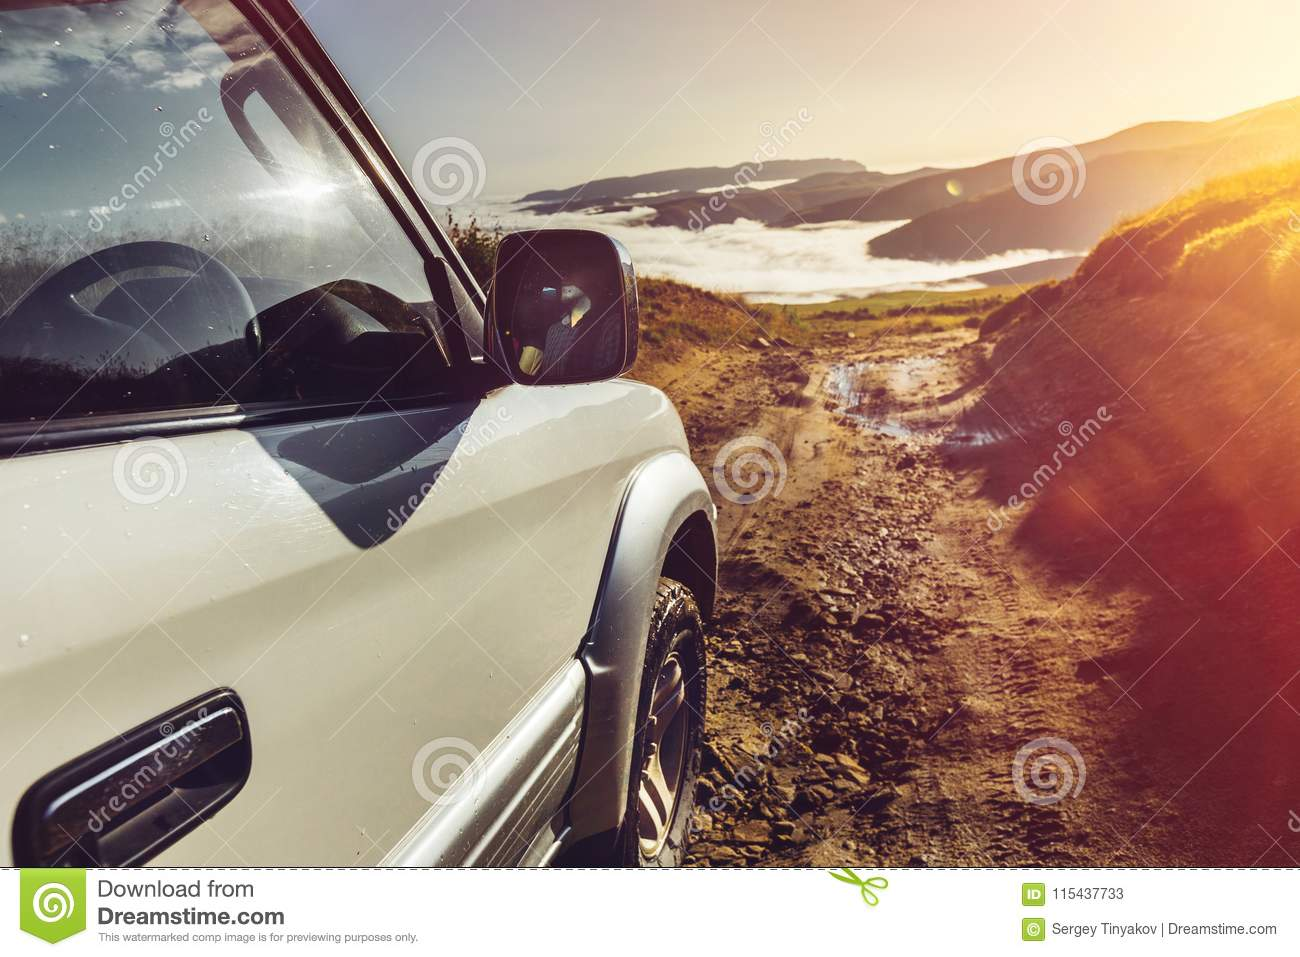 Offroad Car On Mountains And Clouds Background. Road Adventure V